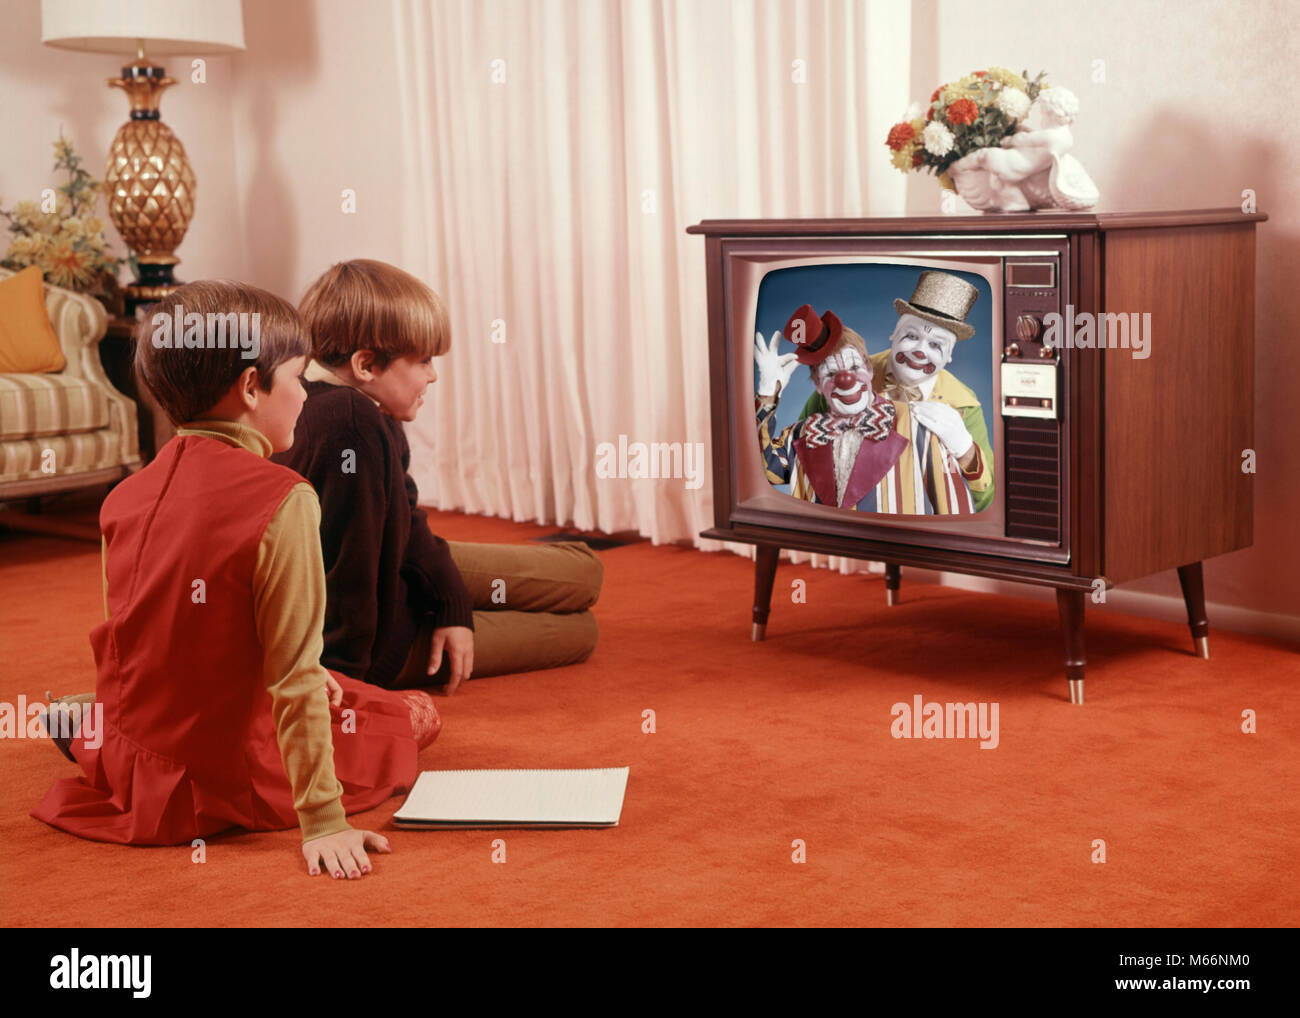 1960s two children boy girl sitting red carpet living room watching